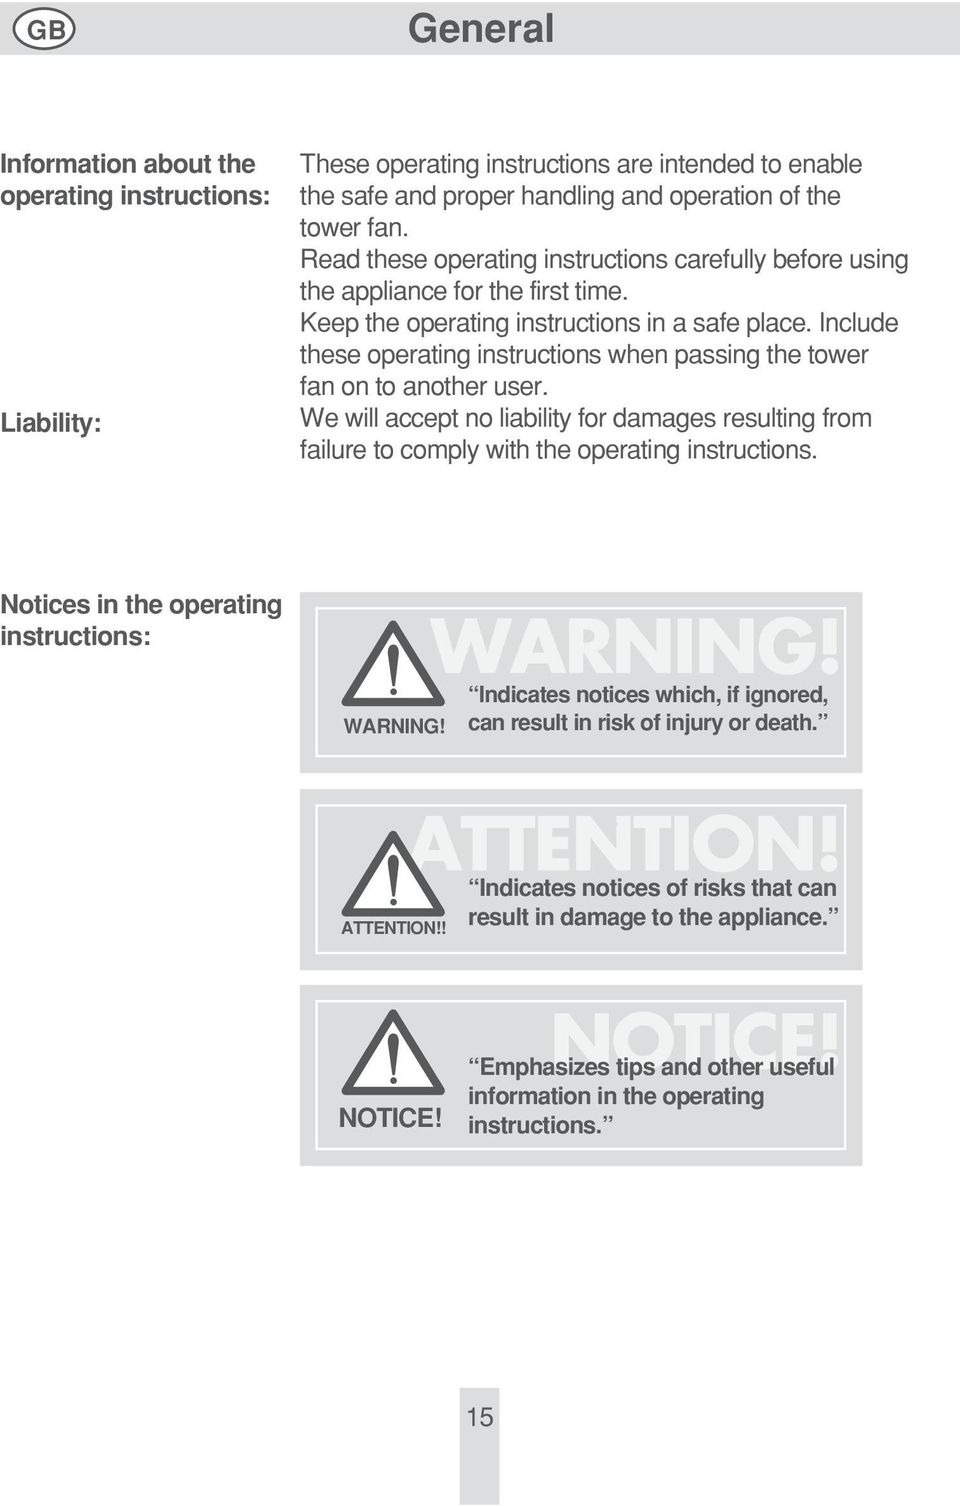 Include these operating instructions when passing the tower fan on to another user. We will accept no liability for damages resulting from failure to comply with the operating instructions.